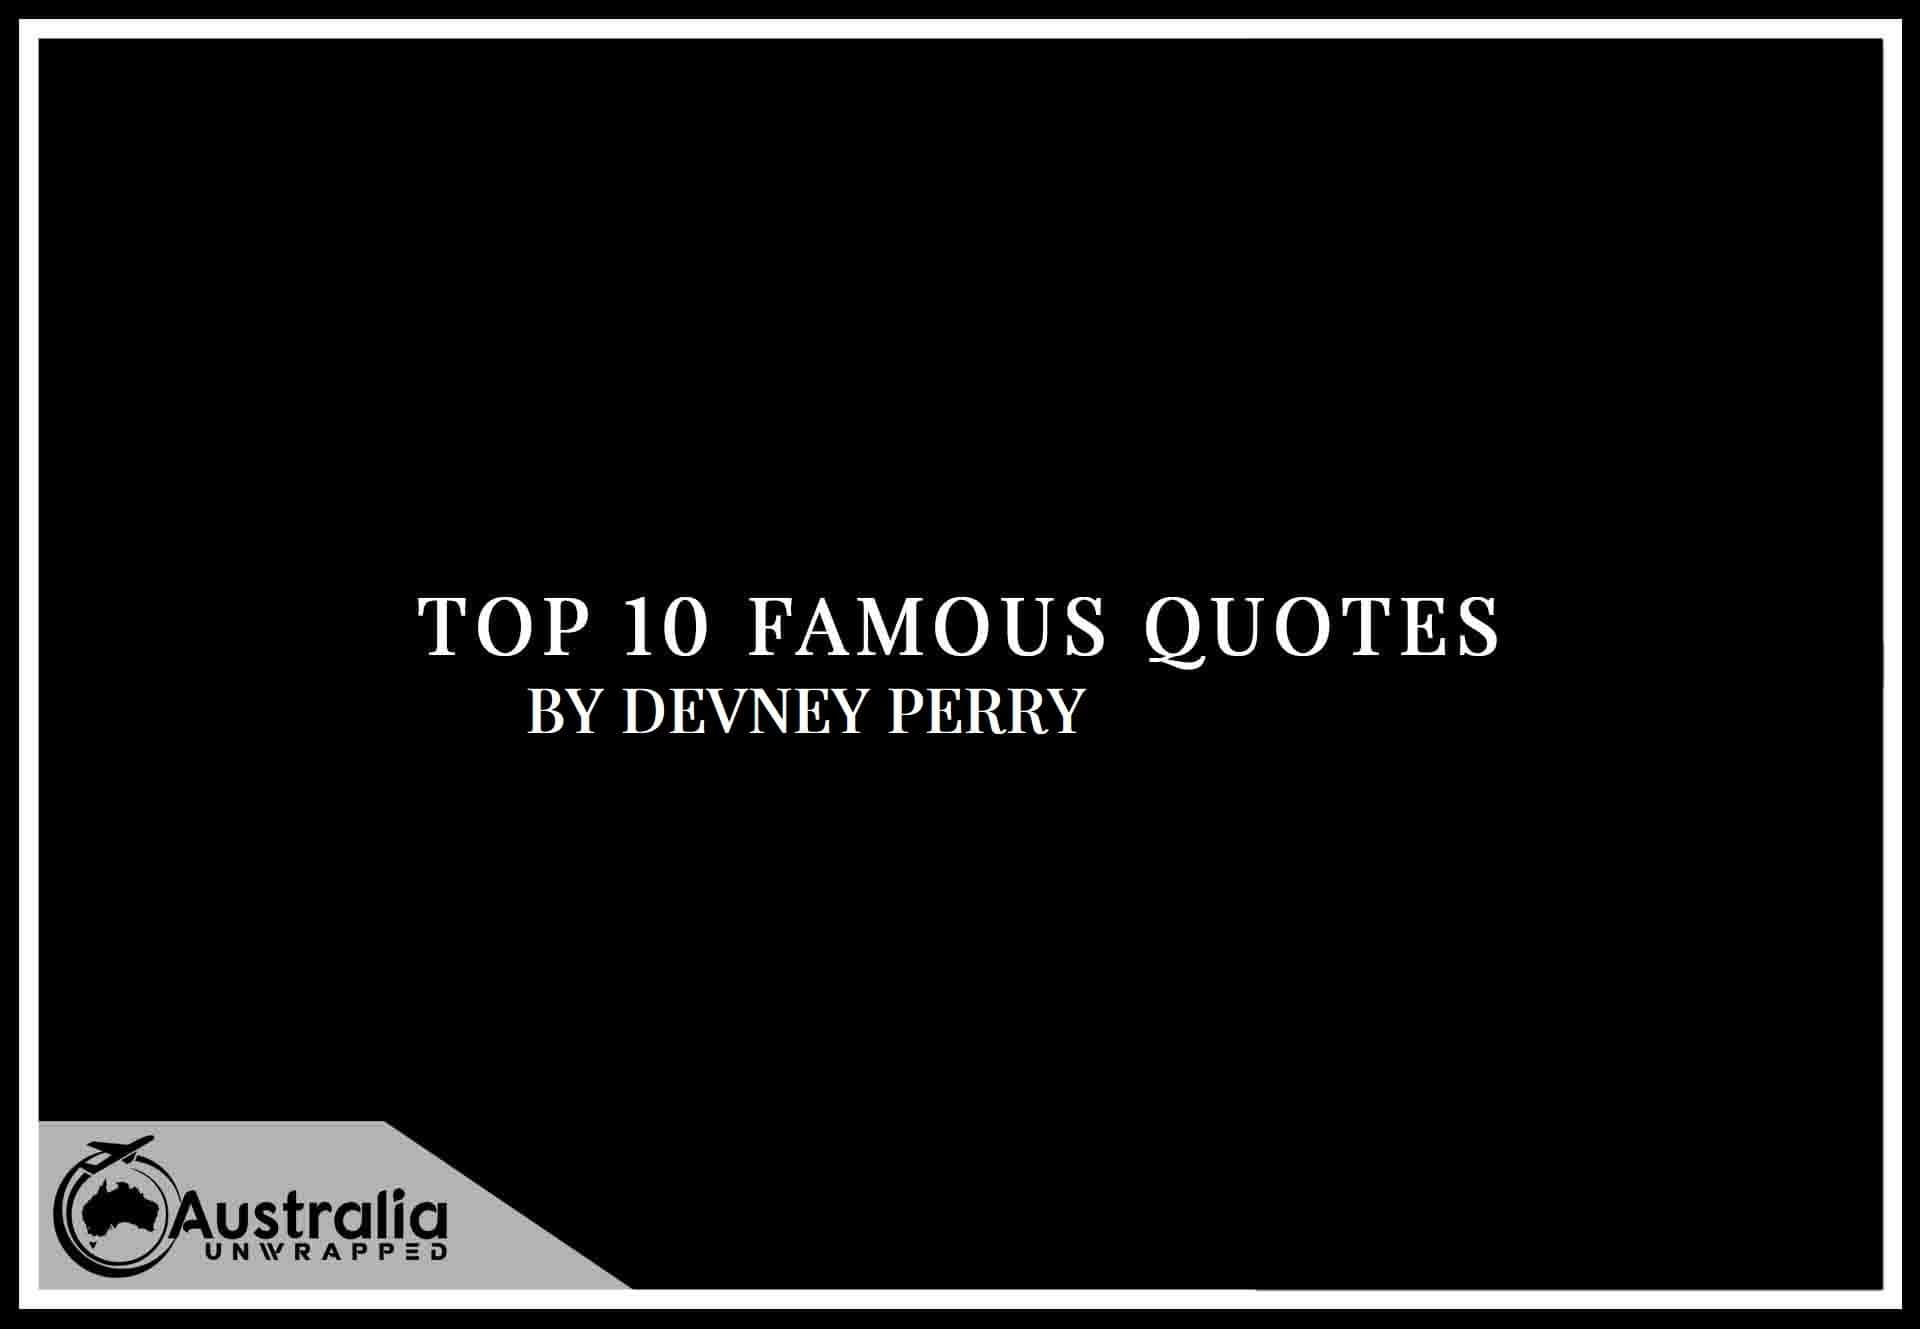 Devney Perry's Top 10 Popular and Famous Quotes